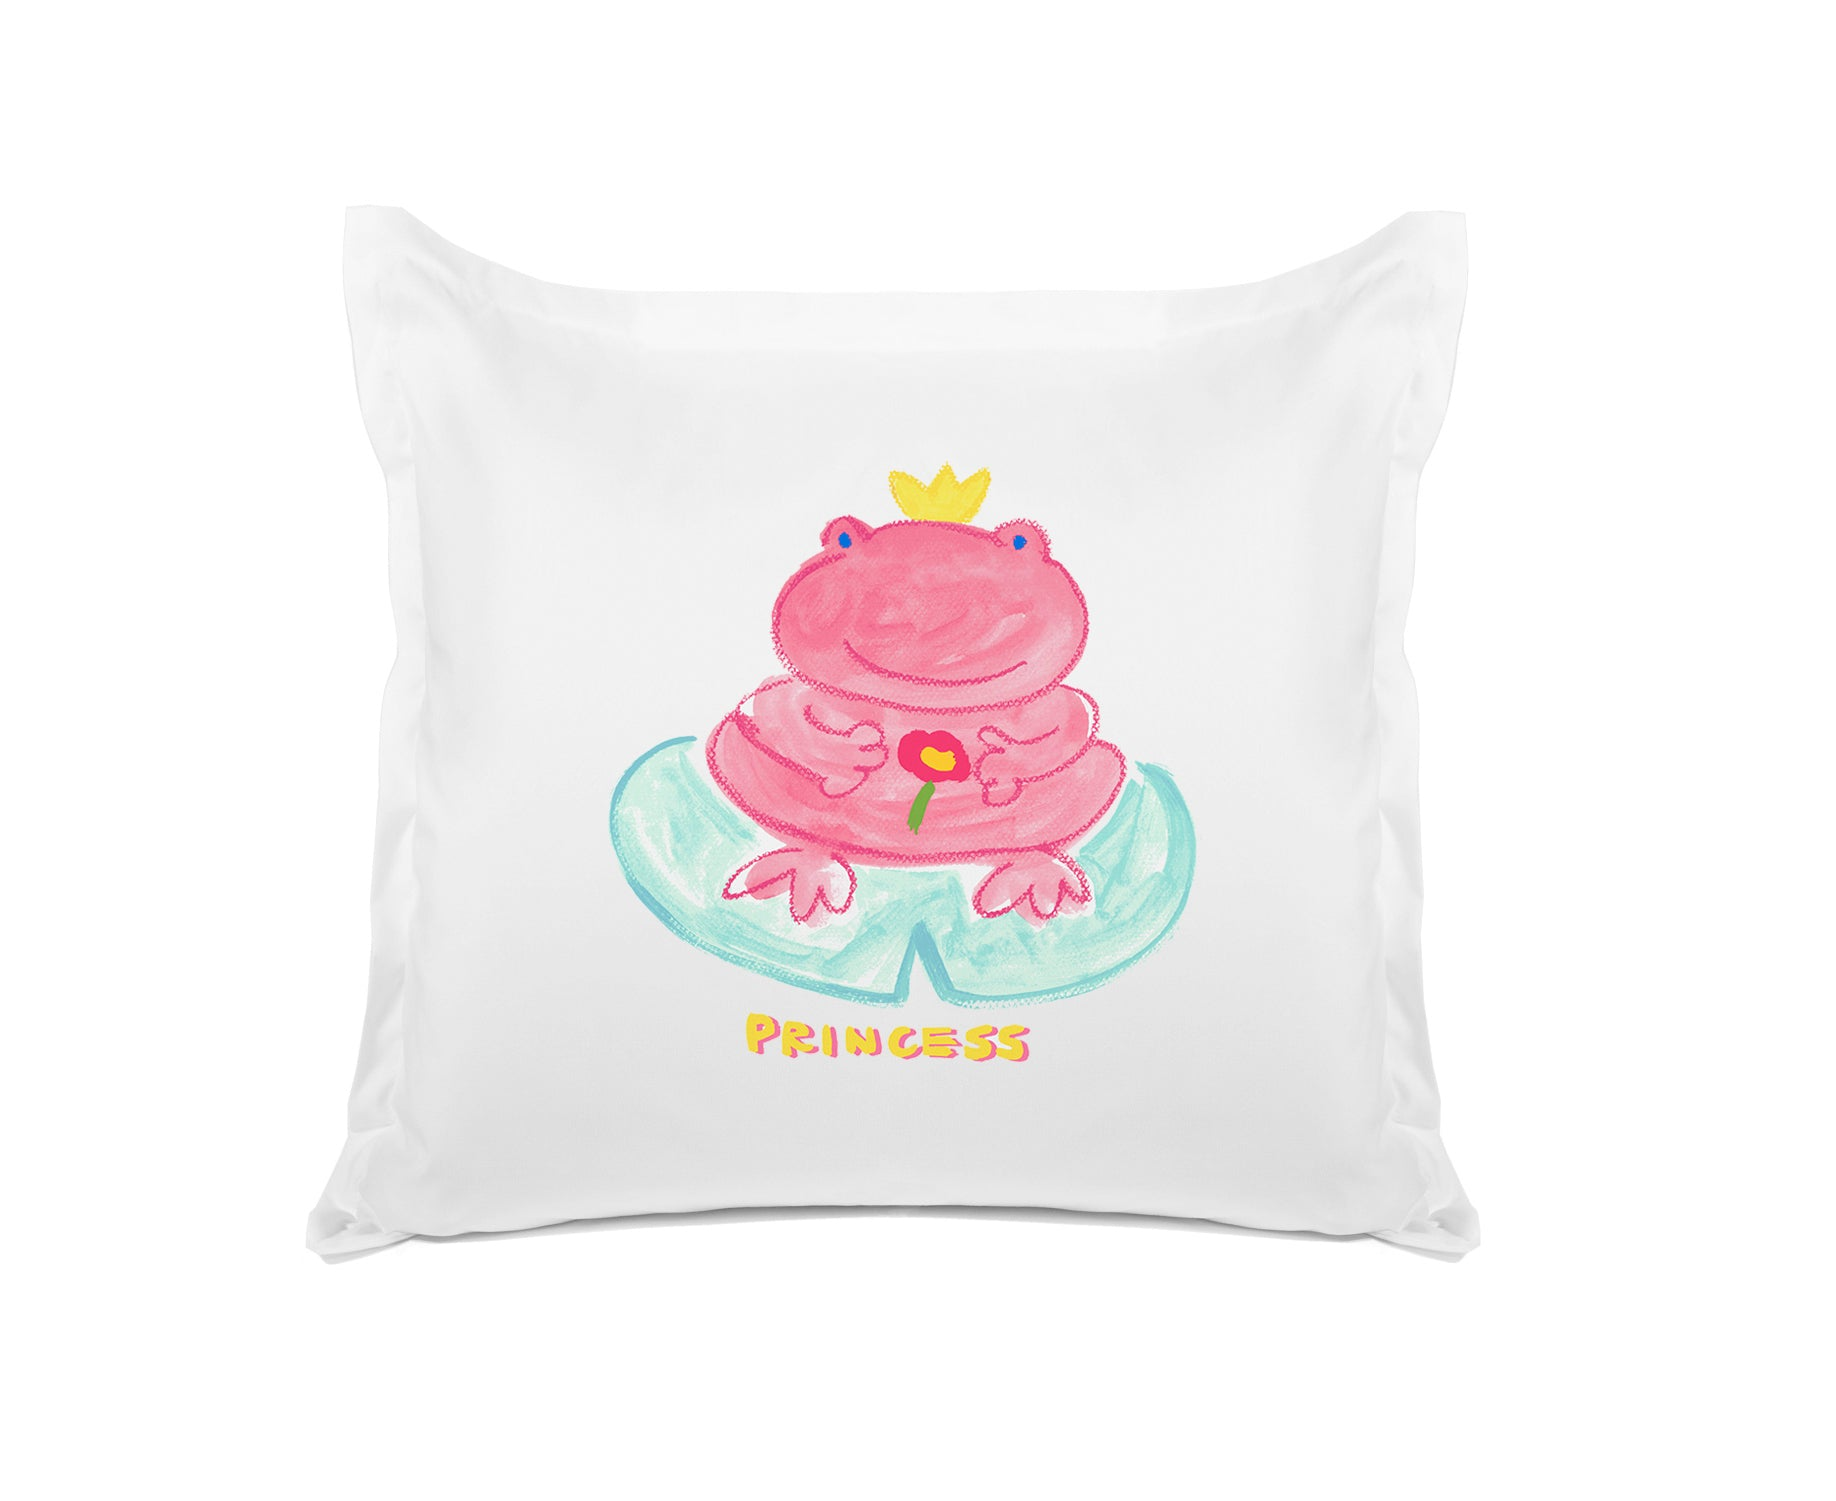 Princess Froggy - Personalized Kids Pillowcase Collection-Di Lewis